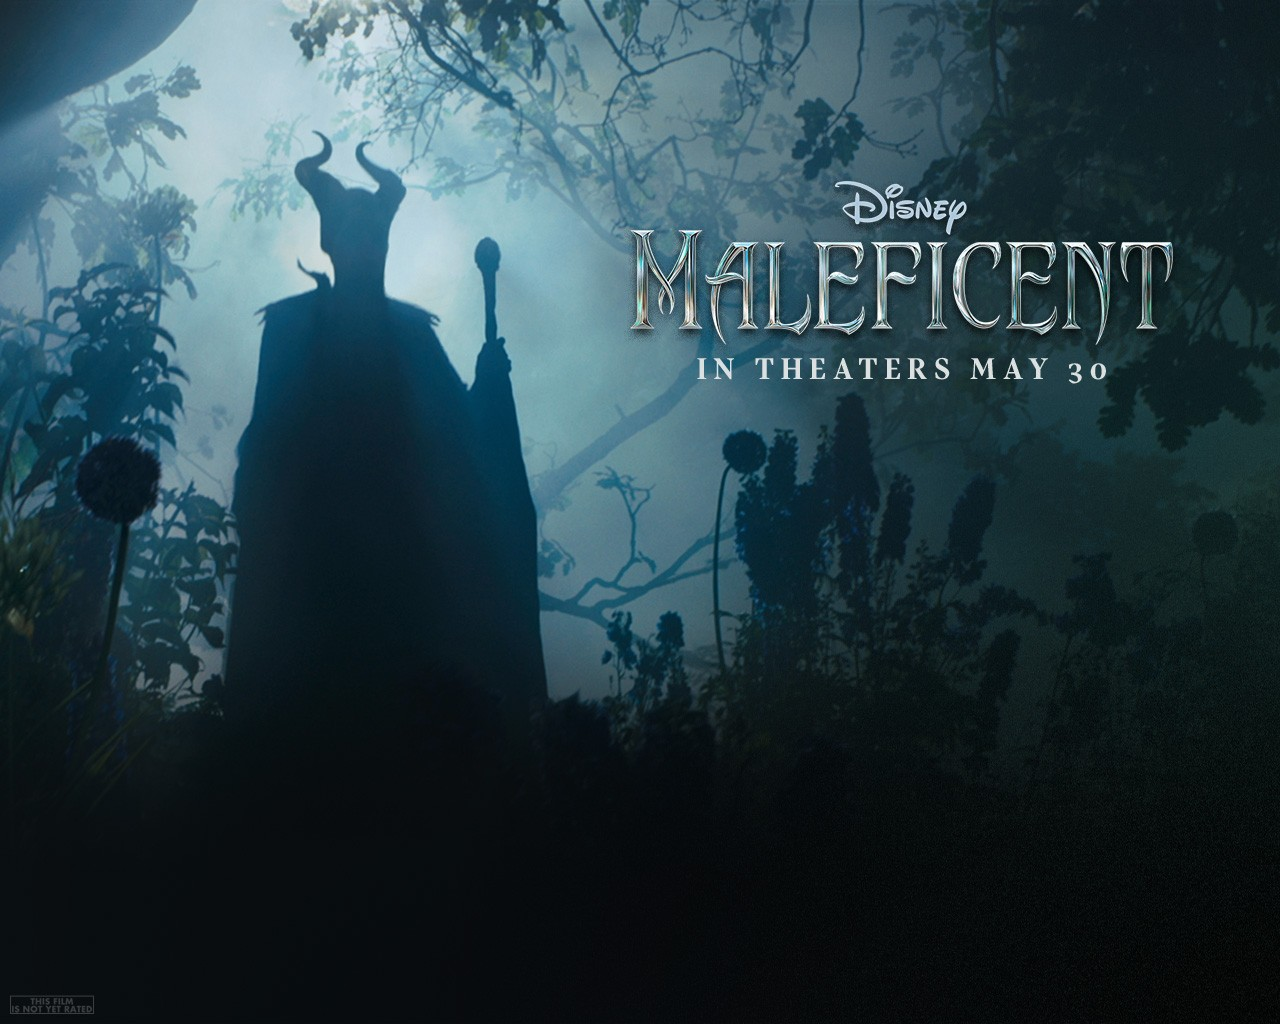 Maleficent Movie 2014 Hd Ipad Iphone Wallpapers: Maleficent 2014 Movie Wallpapers (45 Wallpapers)